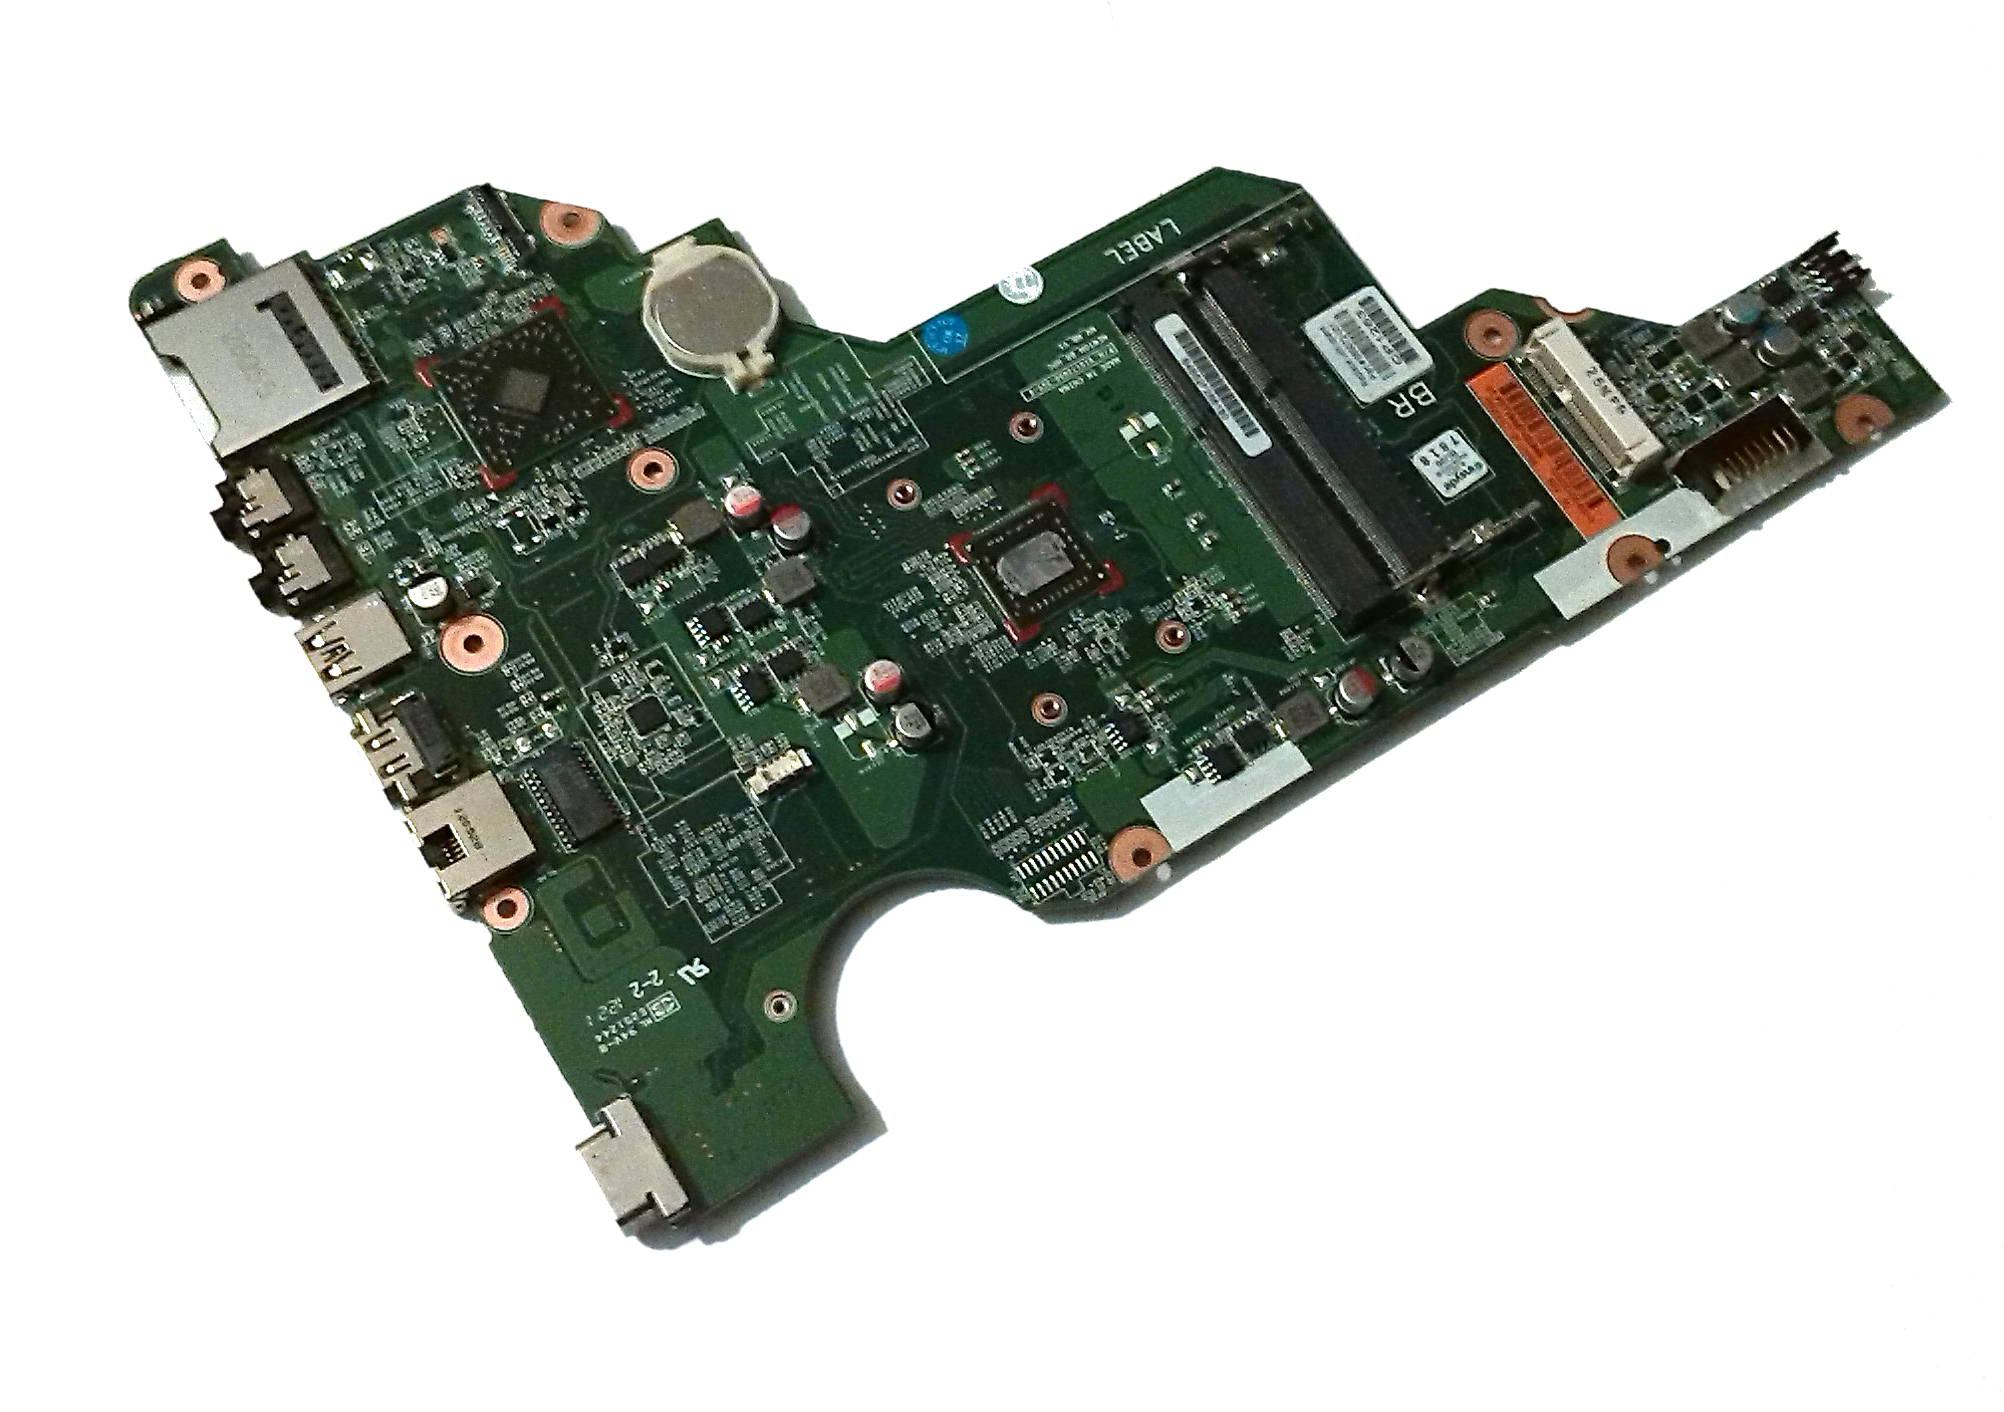 HP 689072-001 655 Laptop Motherboard with AMD E2-1800 Processor